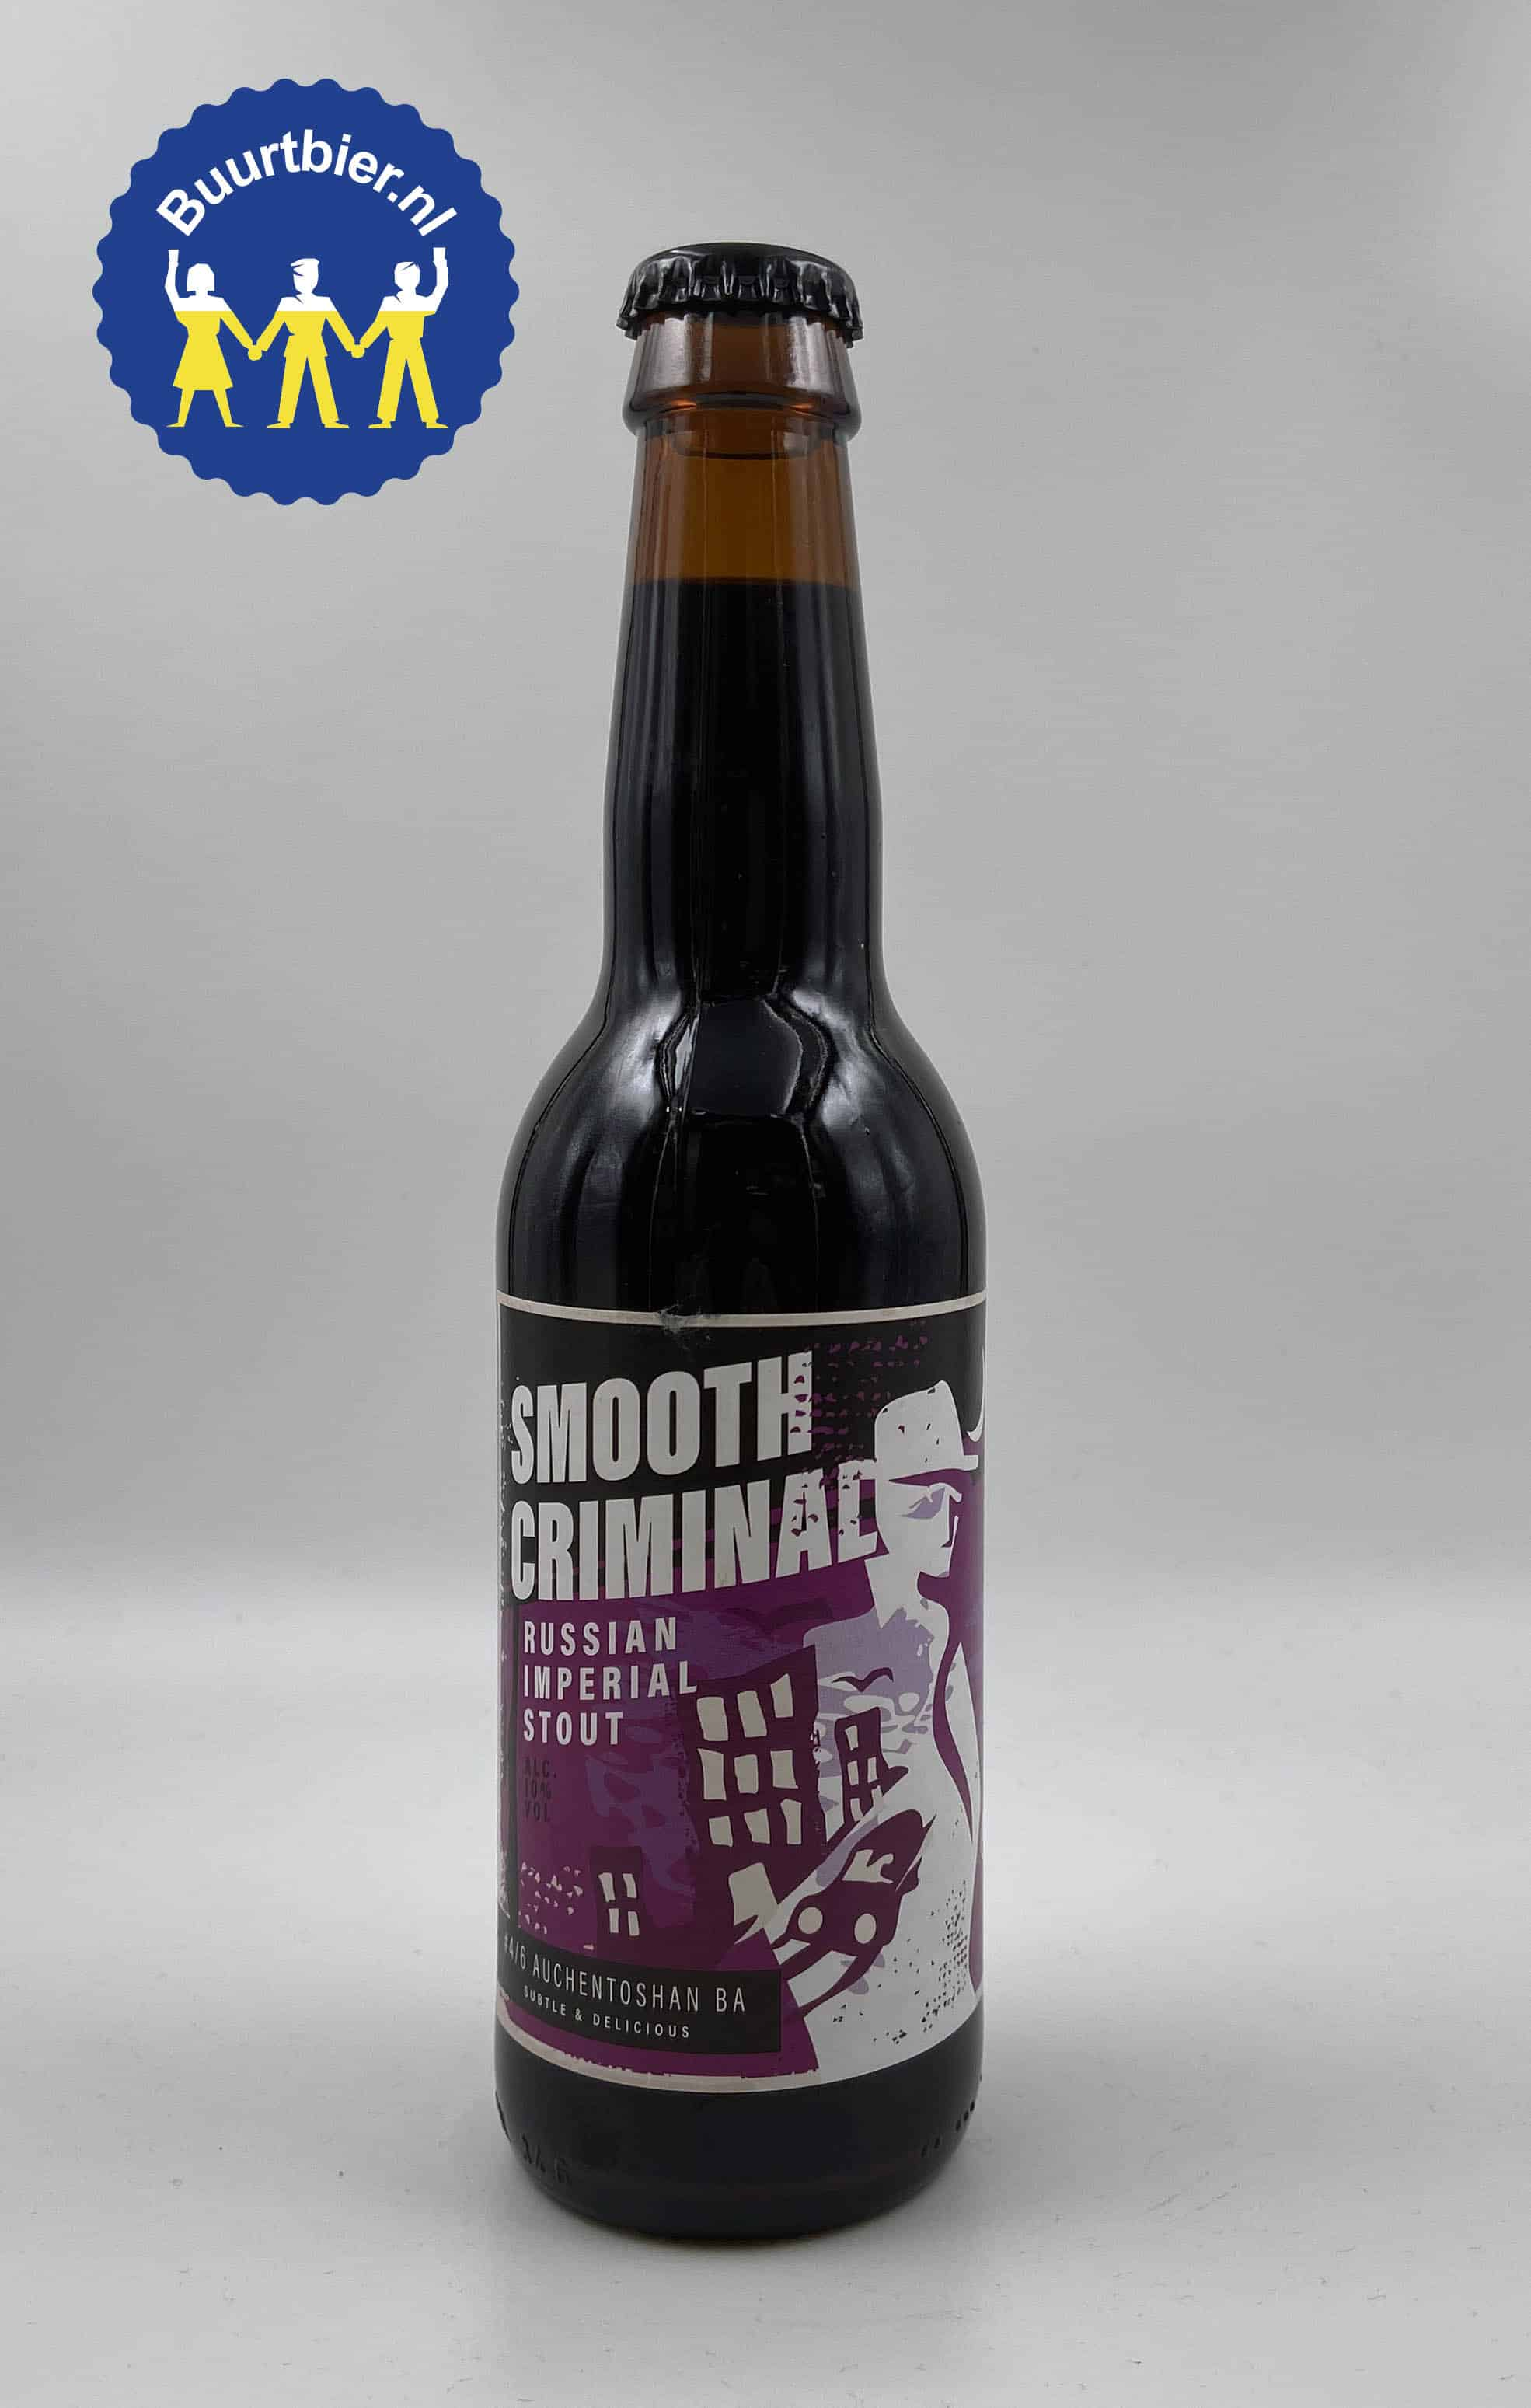 Smooth Criminal RIS Barrel Aged Auchentoshan 33cl - Brouwerij Hommeles